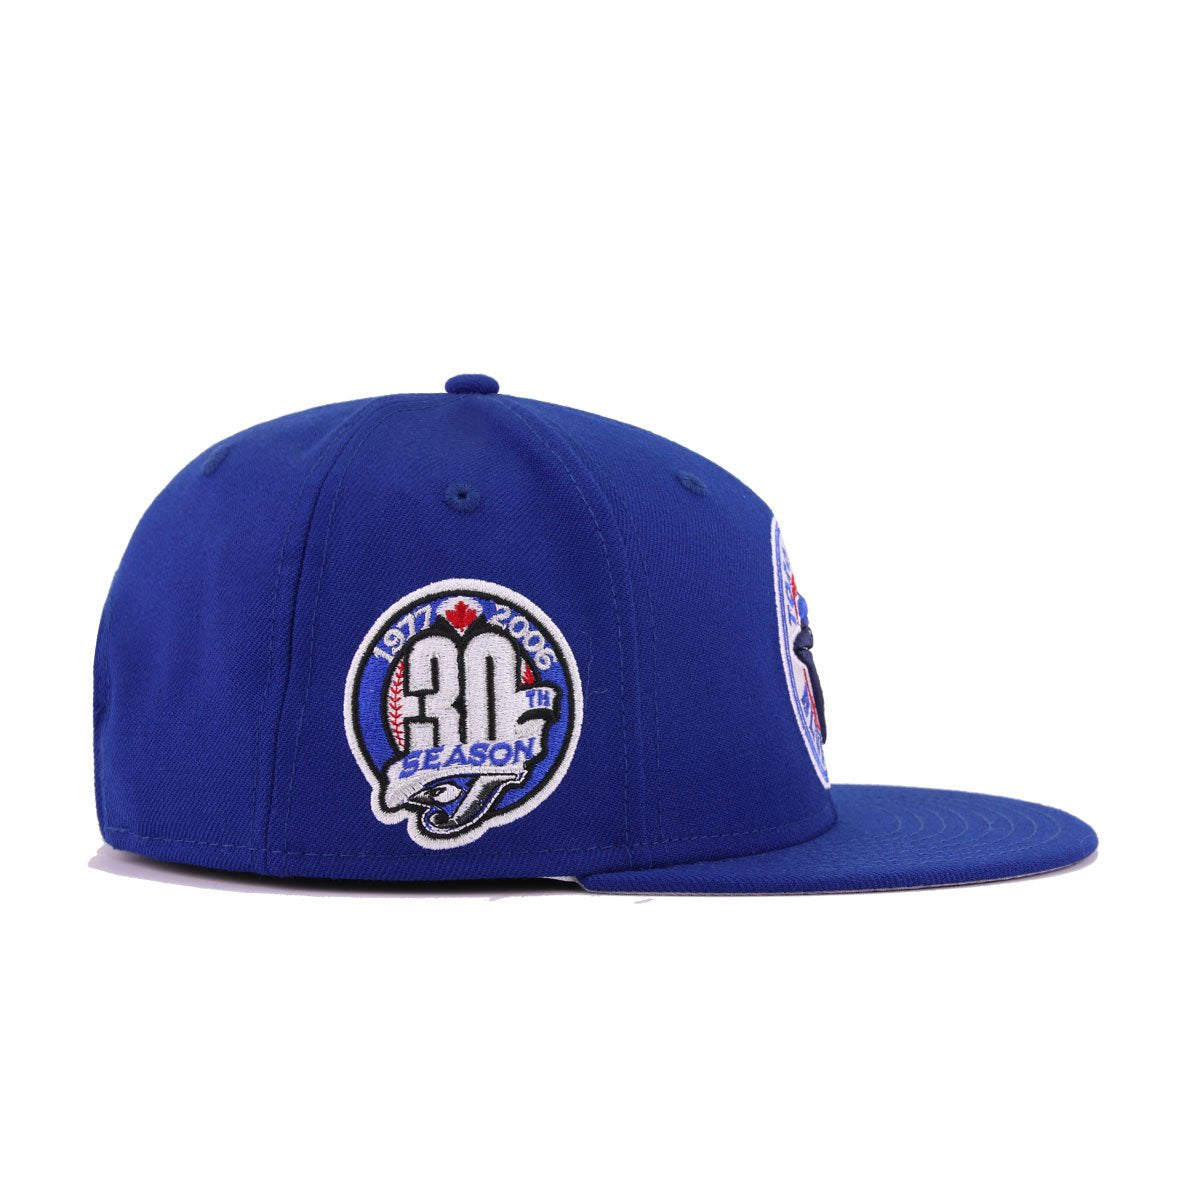 Toronto Blue Jays Light Royal Blue Light Navy Scarlet White 30th Anniversary New Era 9Fifty Snapback